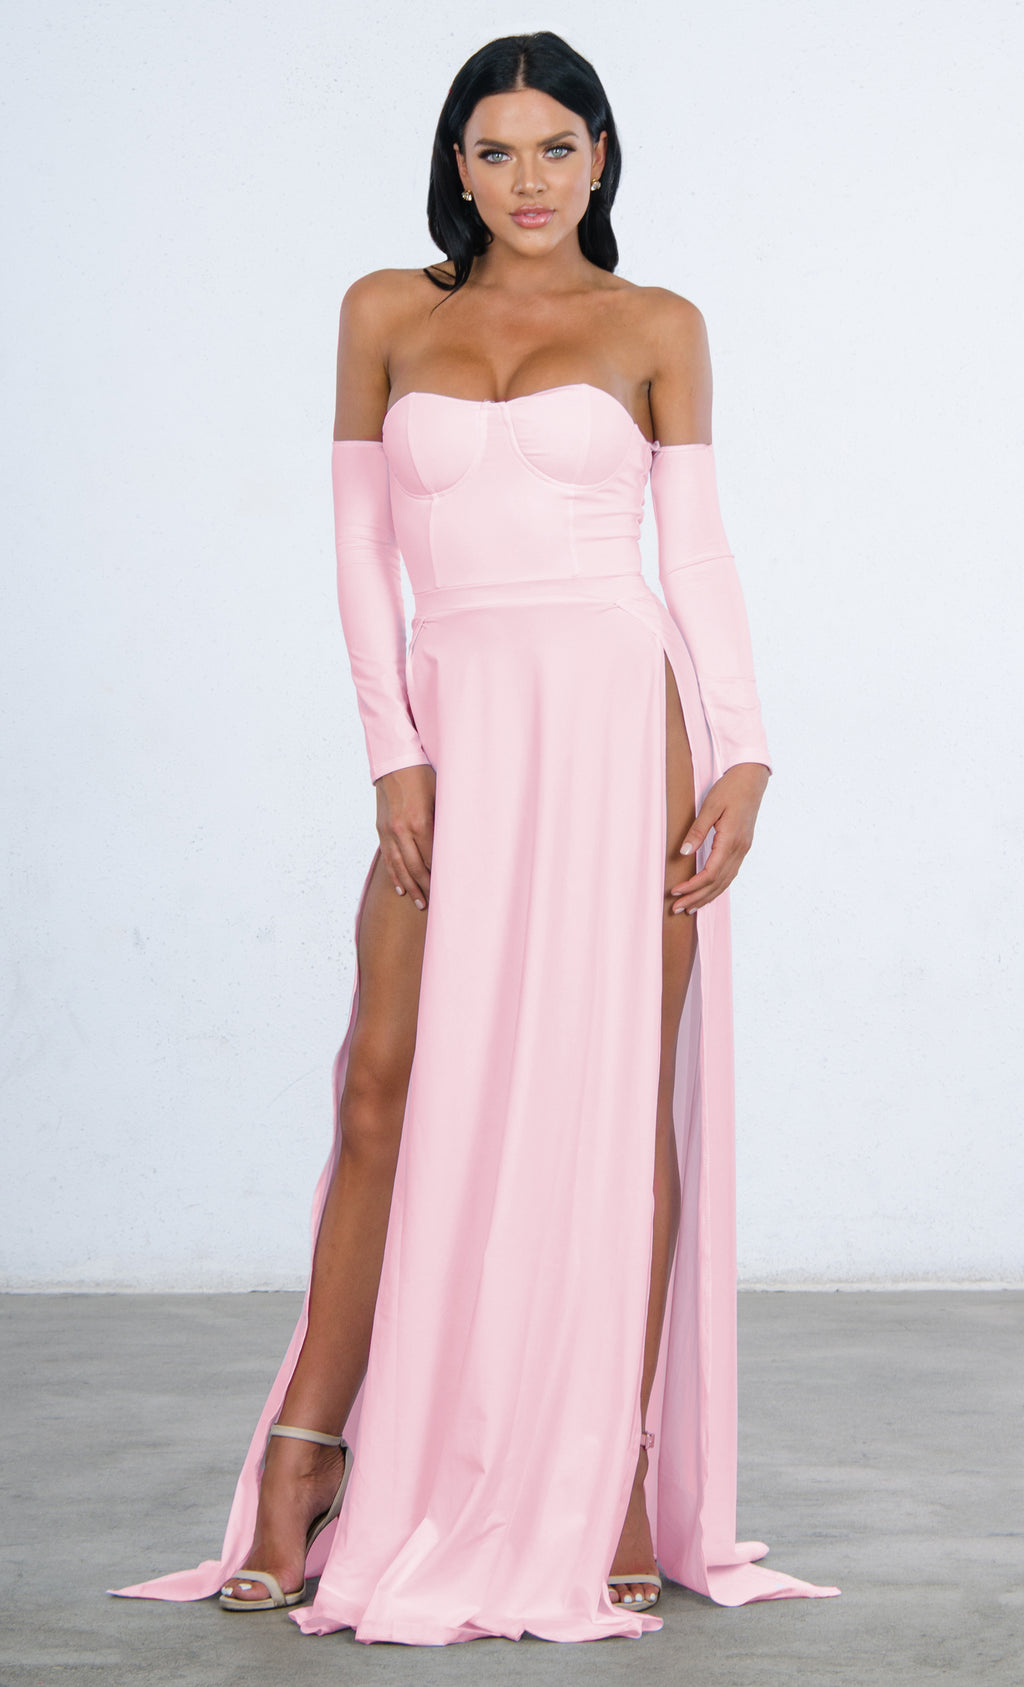 Indie XO You're An Angel Double Slit Off the Shoulder Bustier Long Sleeve Maxi Gown Dress - 2 Colors Available